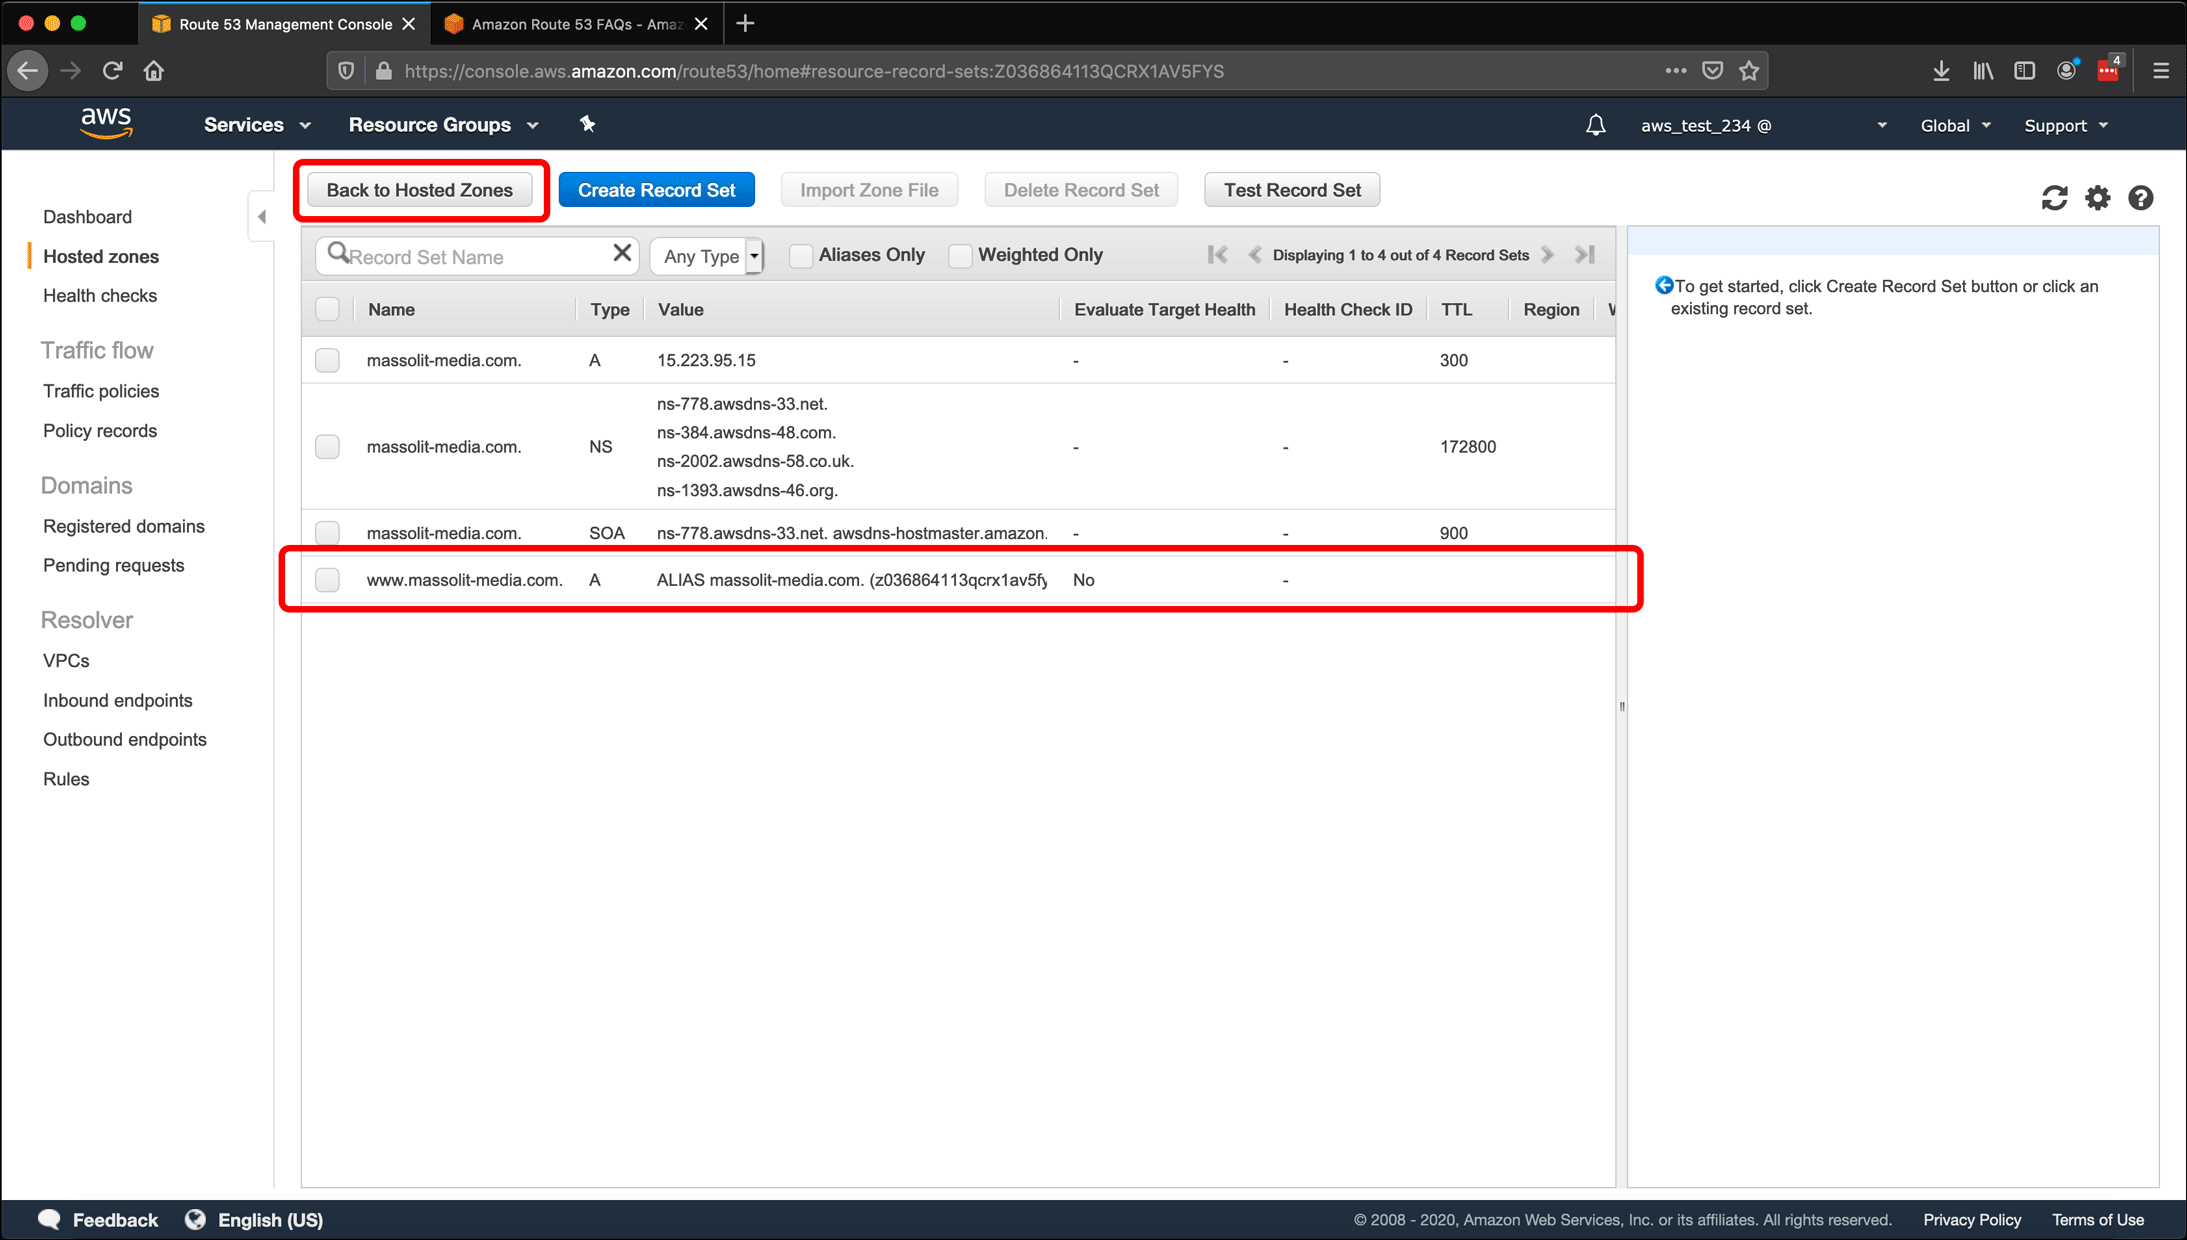 Screenshot: AWS EC2 instance, Elastic IPs, Route 53 DNS management, and restarting or shutting down the instance.